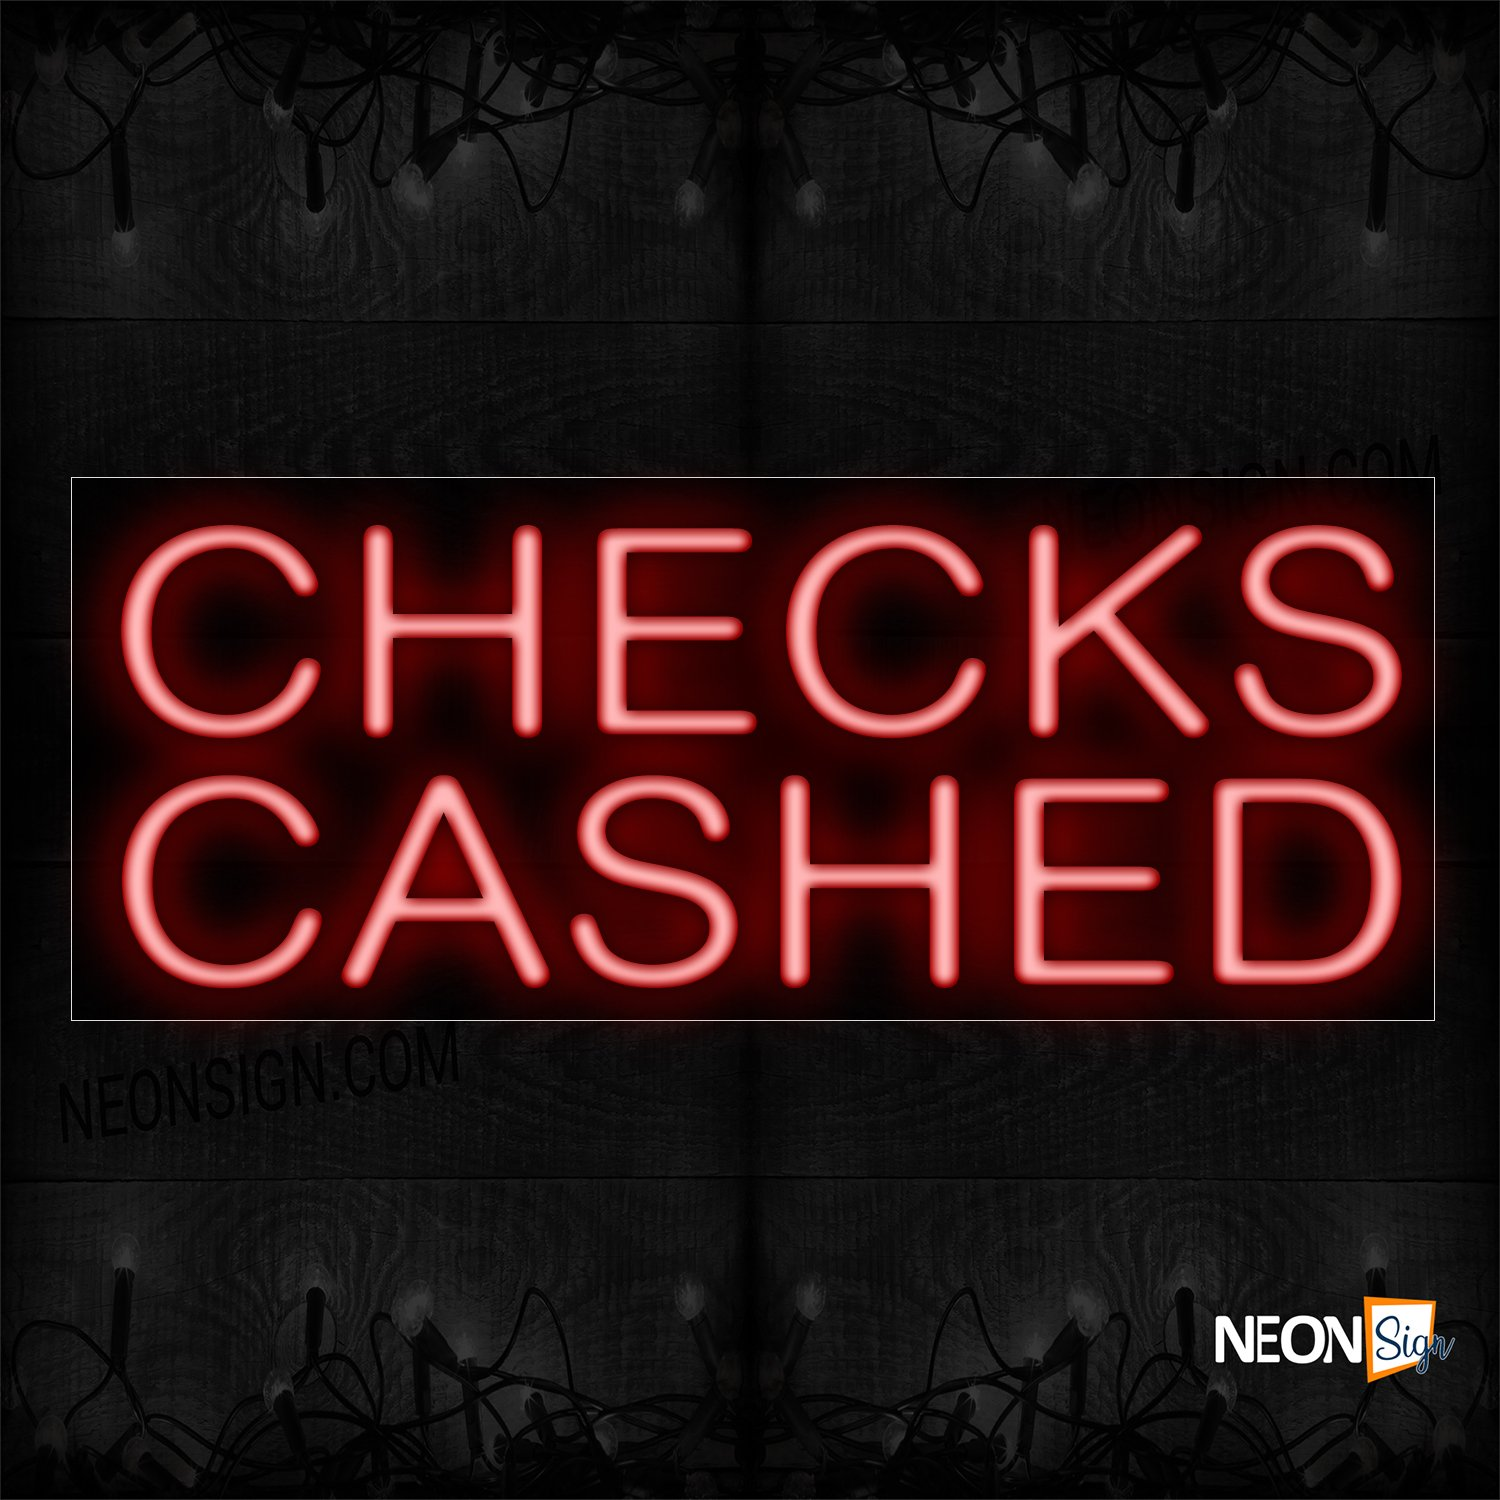 Image of 10035 Check Cashed In Red Neon Sign_13x32 Black Backing